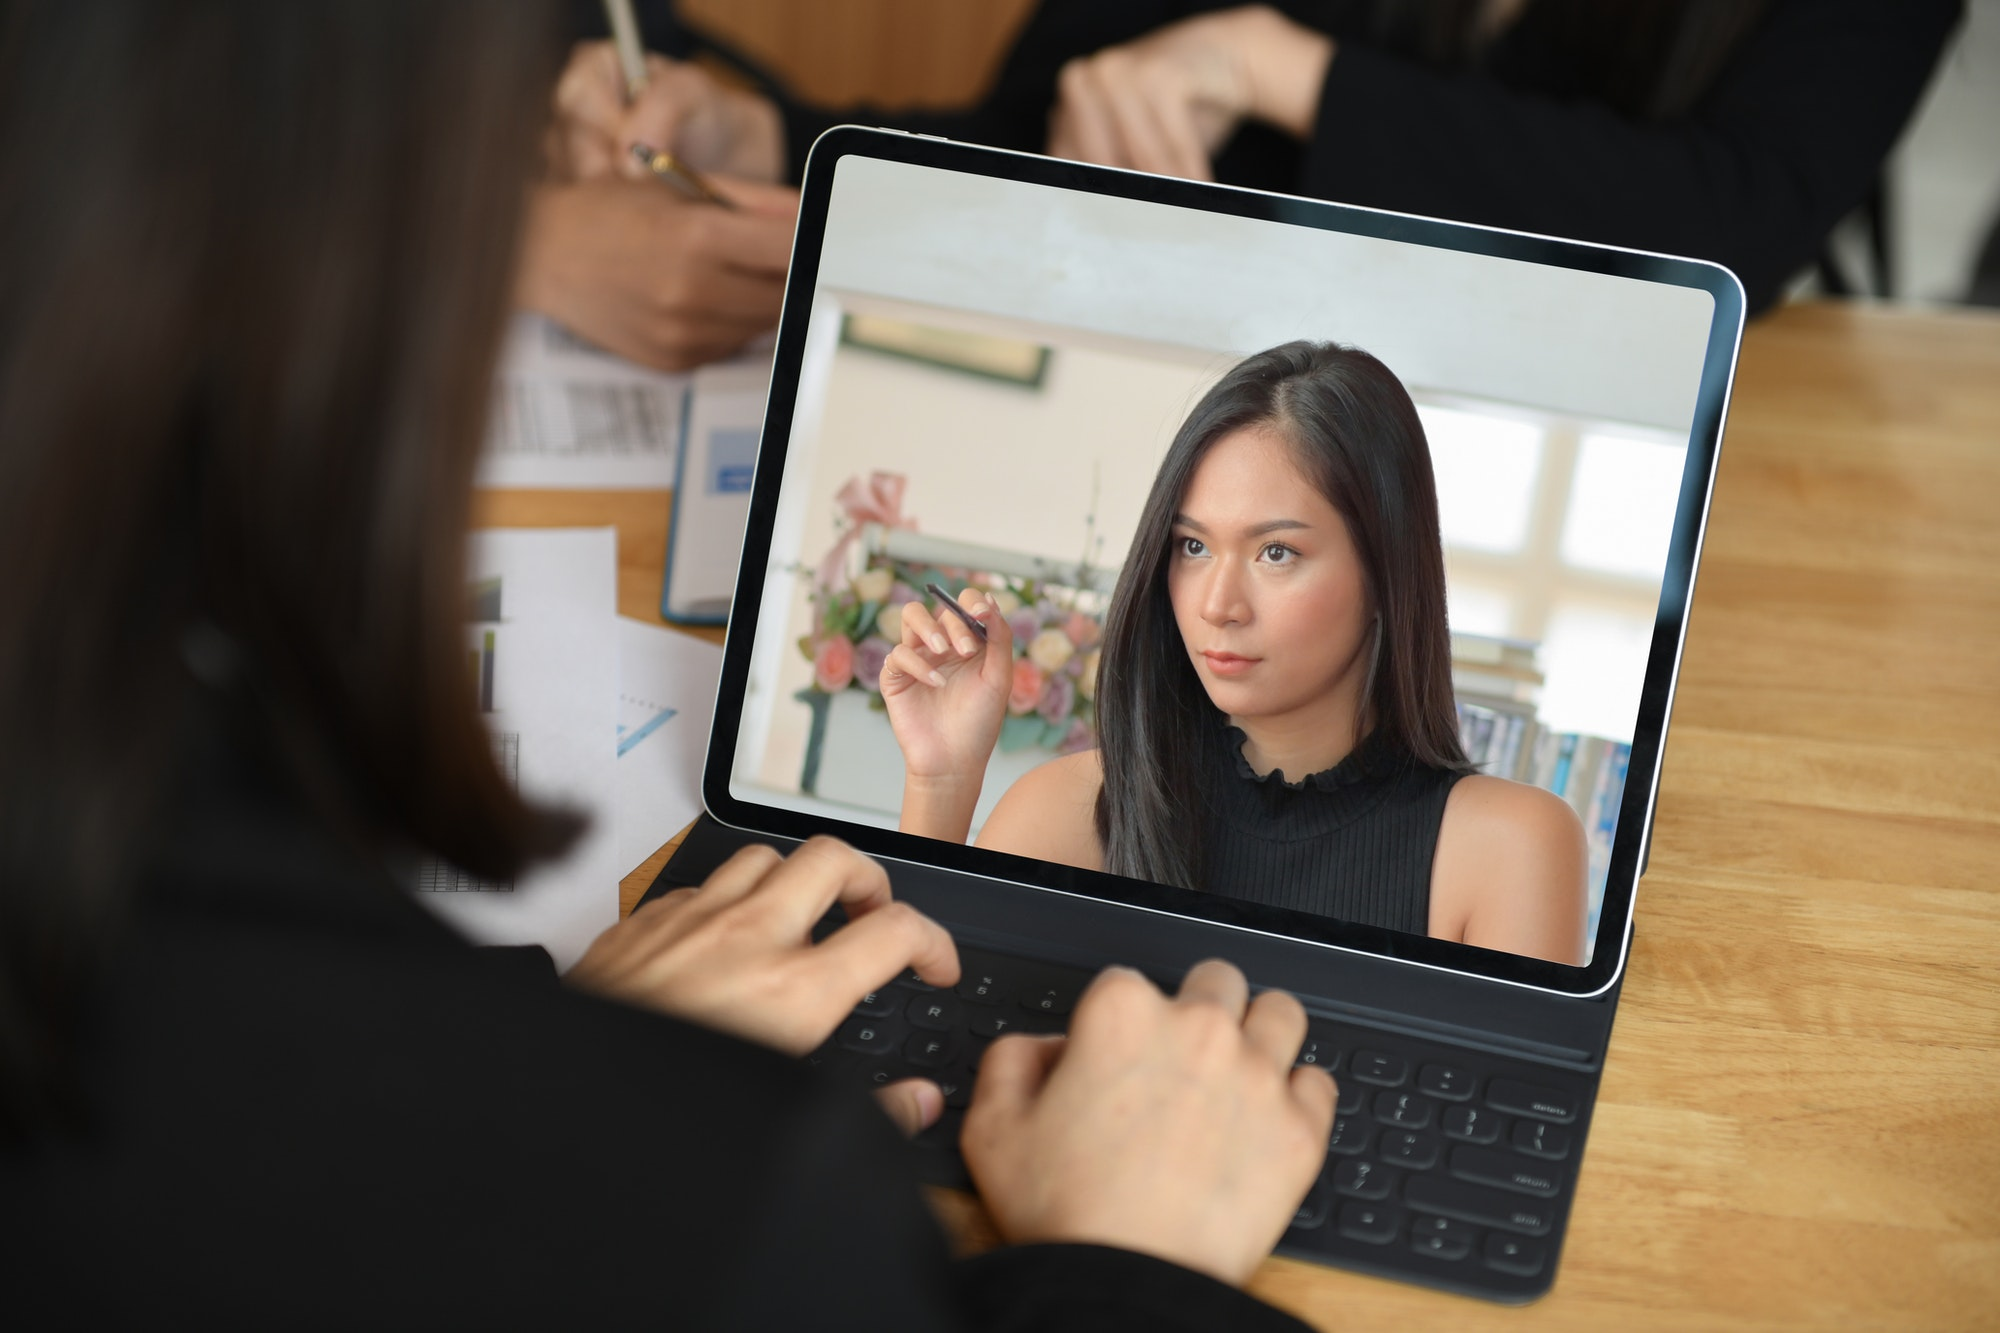 A woman on a laptop, seemingly video calling another (possible fellow employee) who is visually perturbed by something